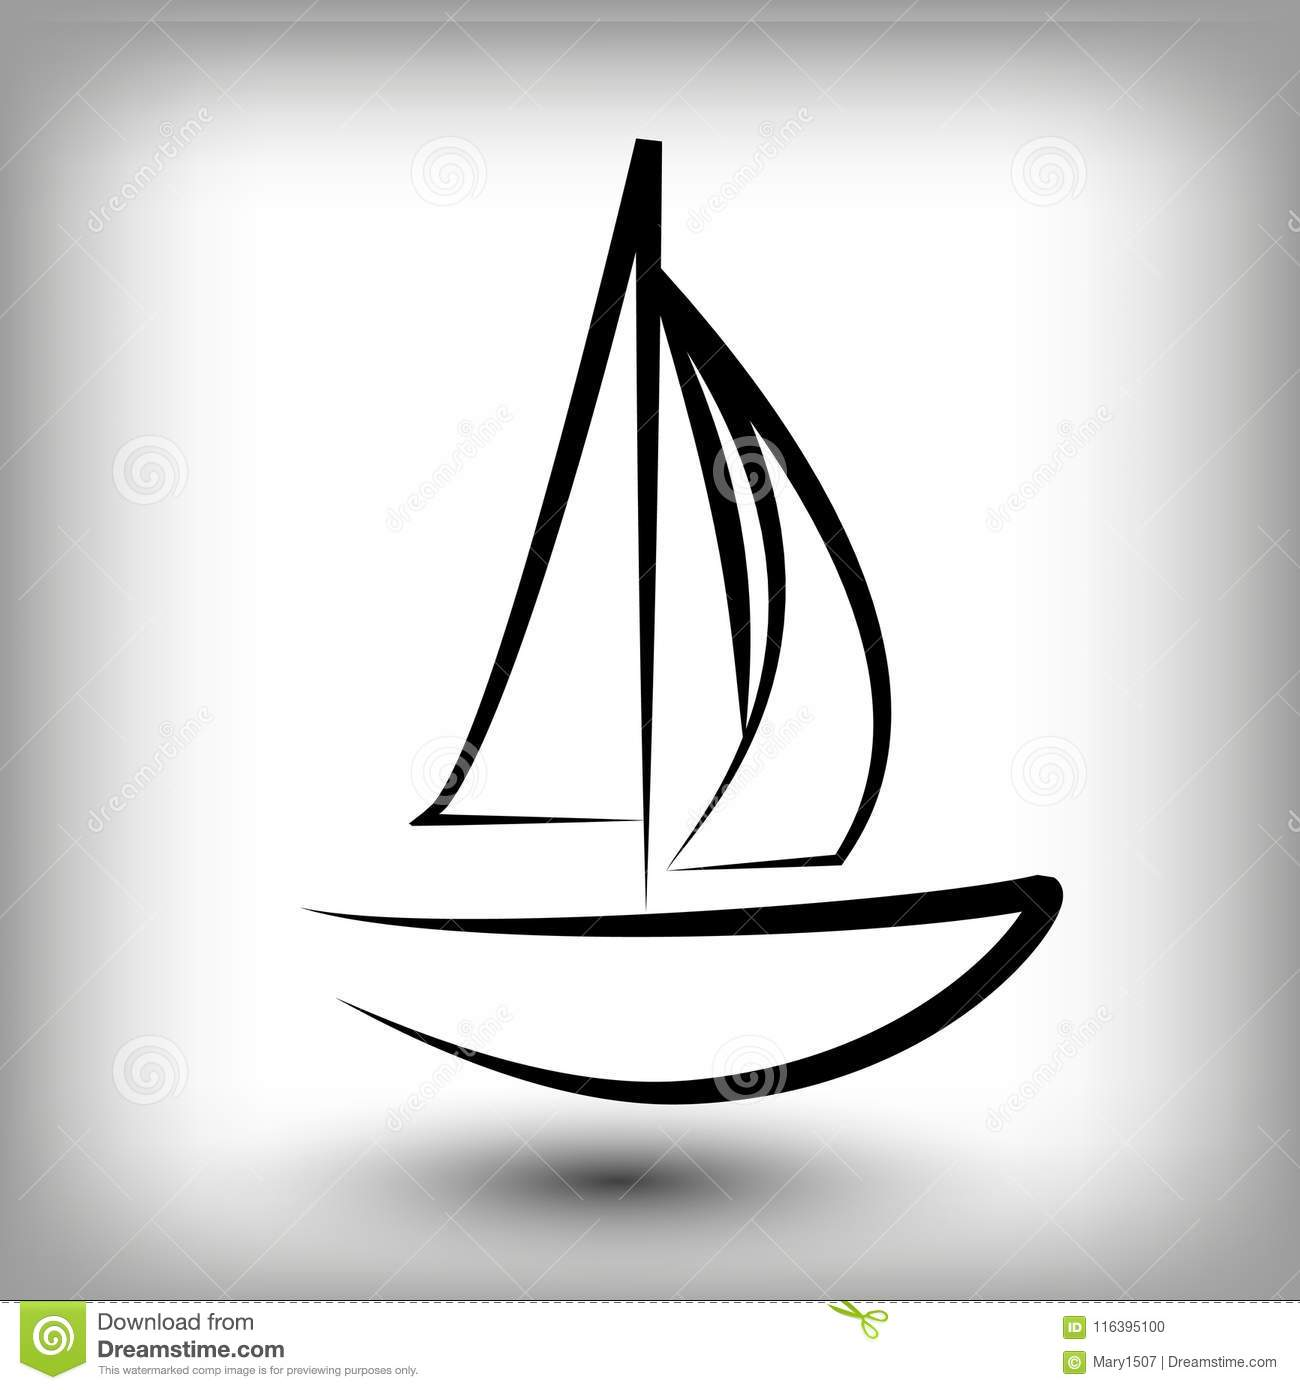 yacht logo templates sail boat silhouettes stock vector